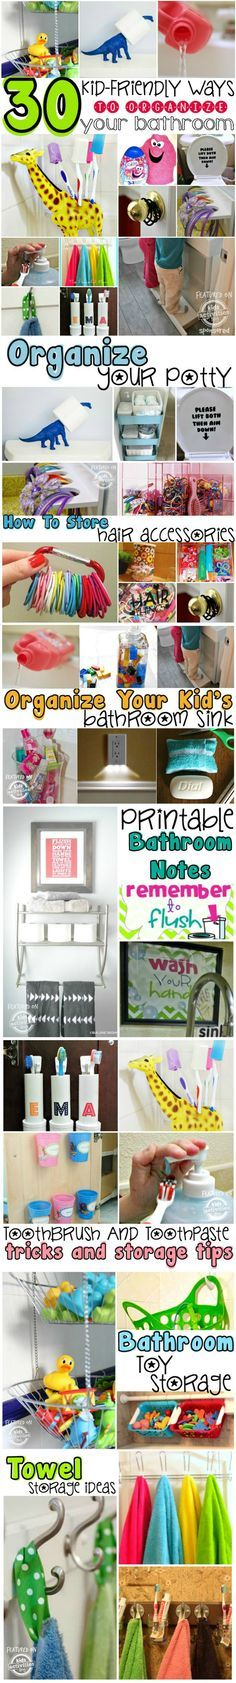 So many awesome ways to organize a bathroom just for kids!